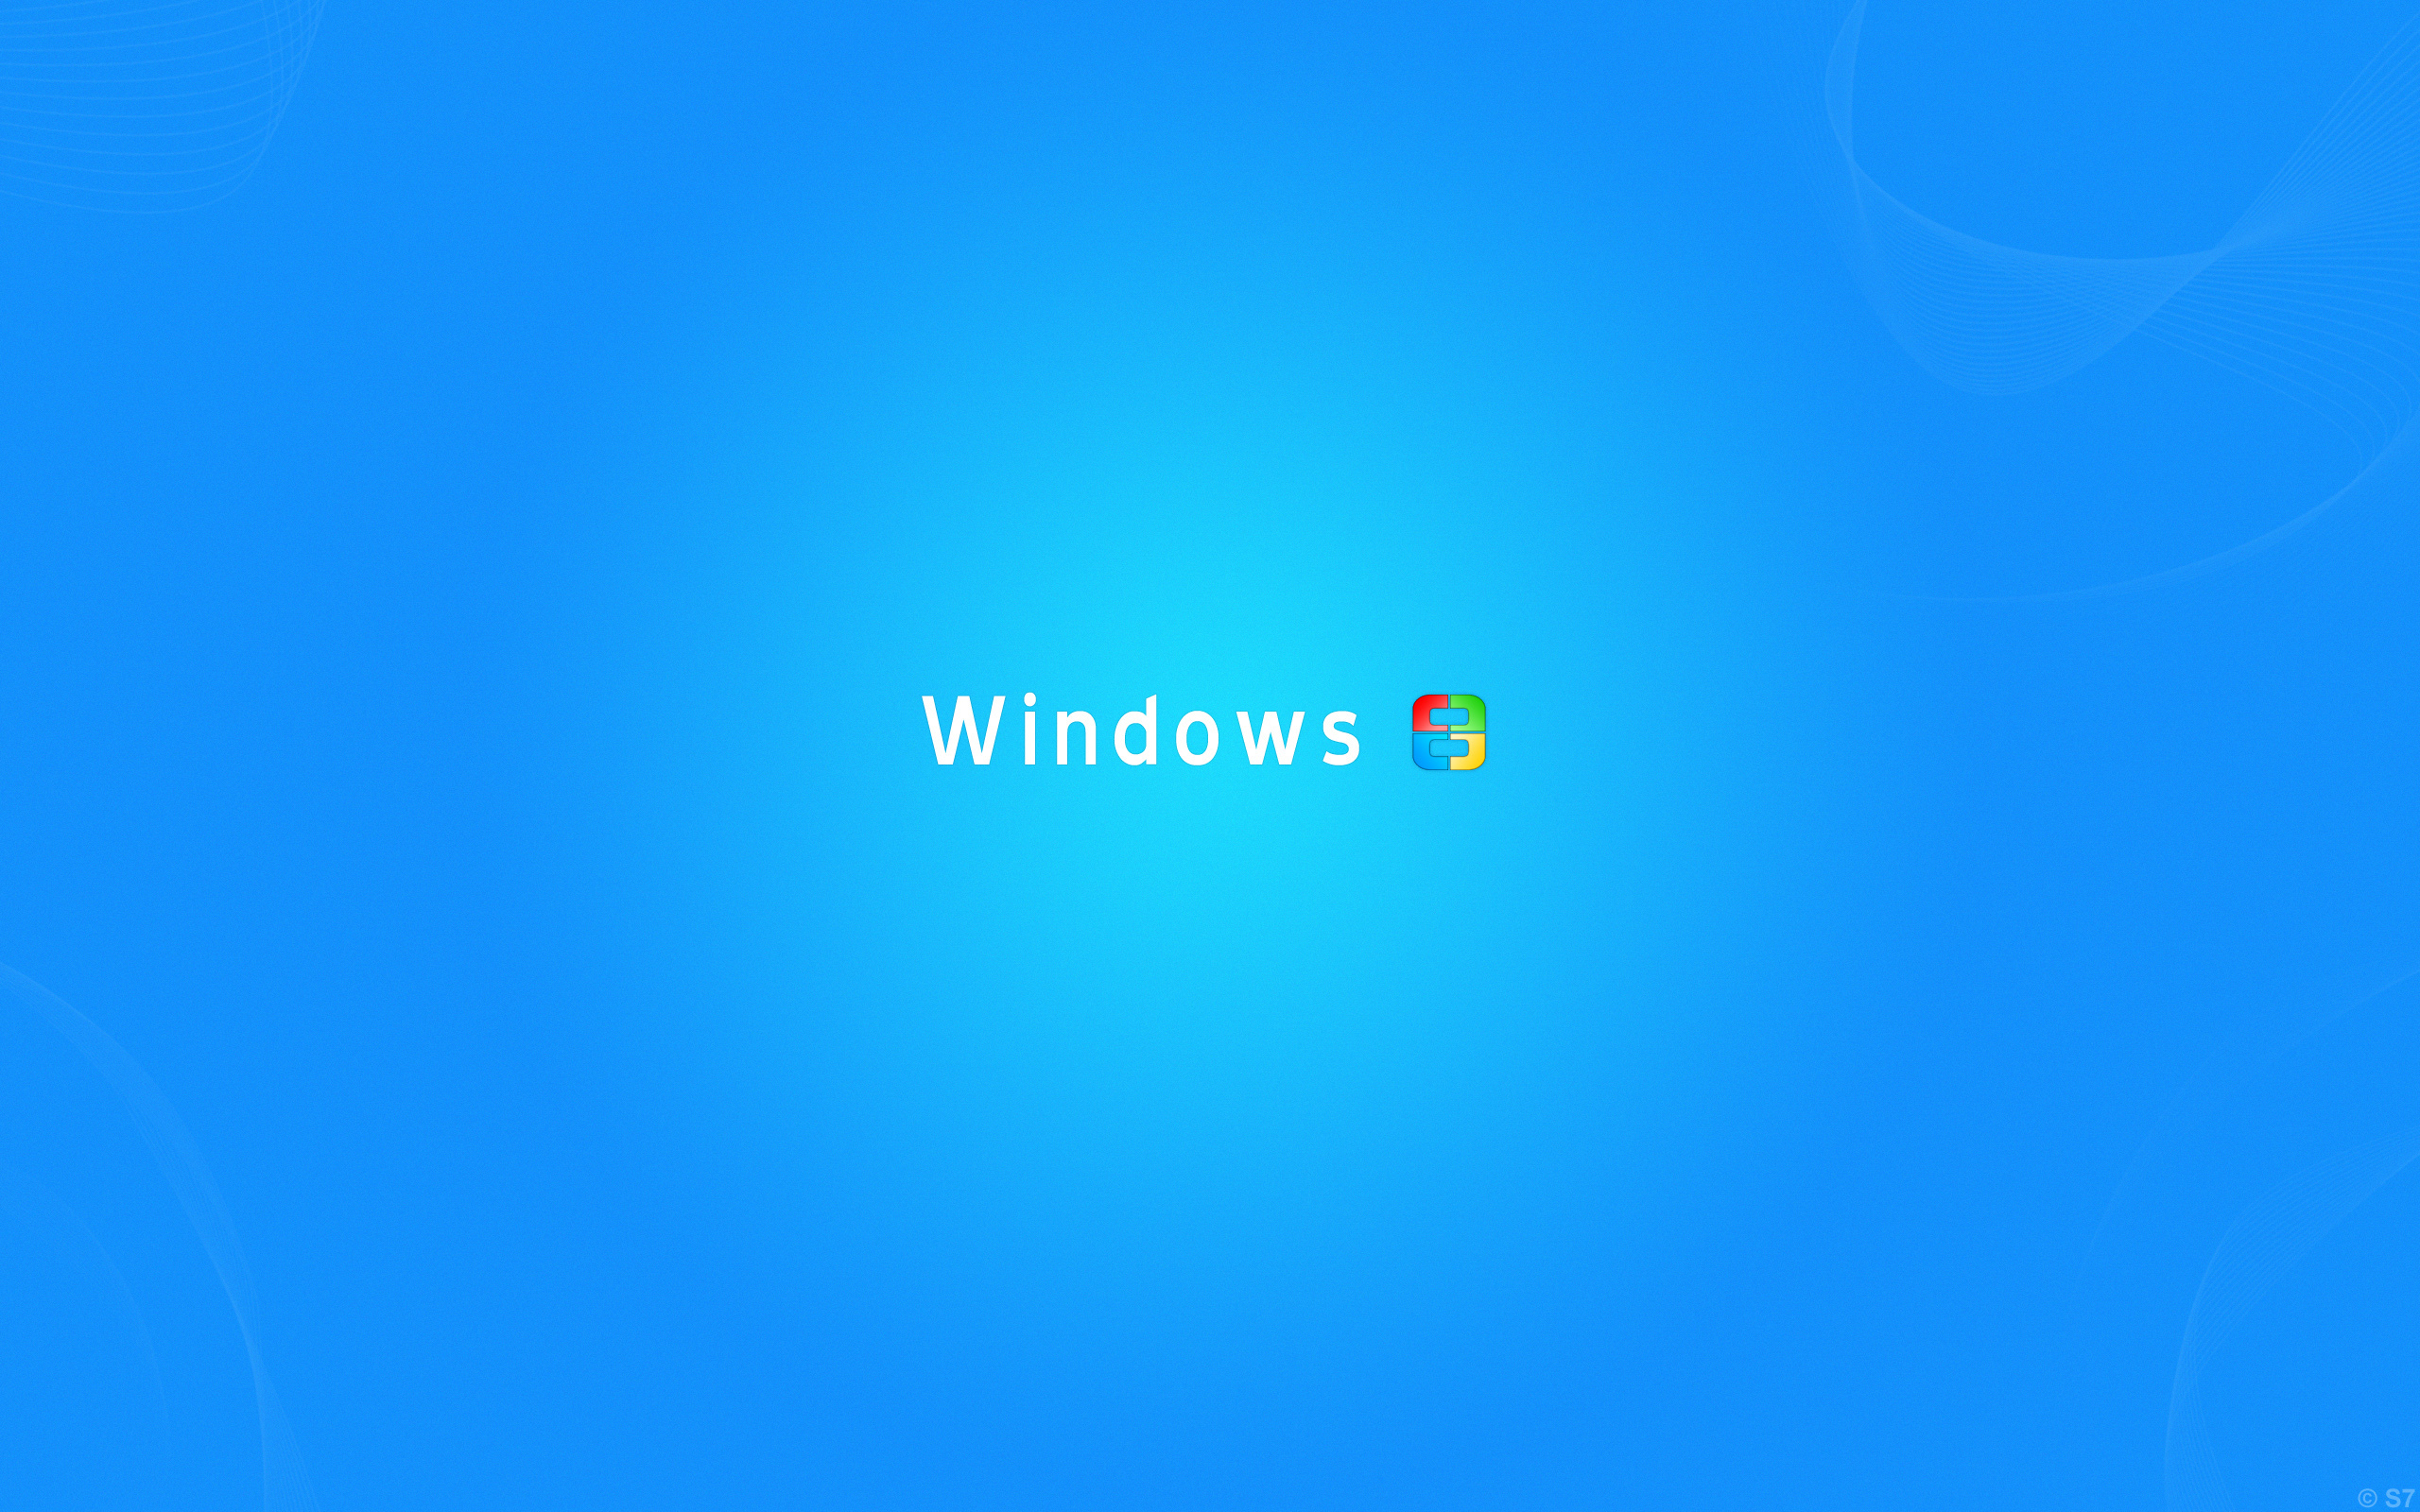 Stock Windows 10 Wallpaper